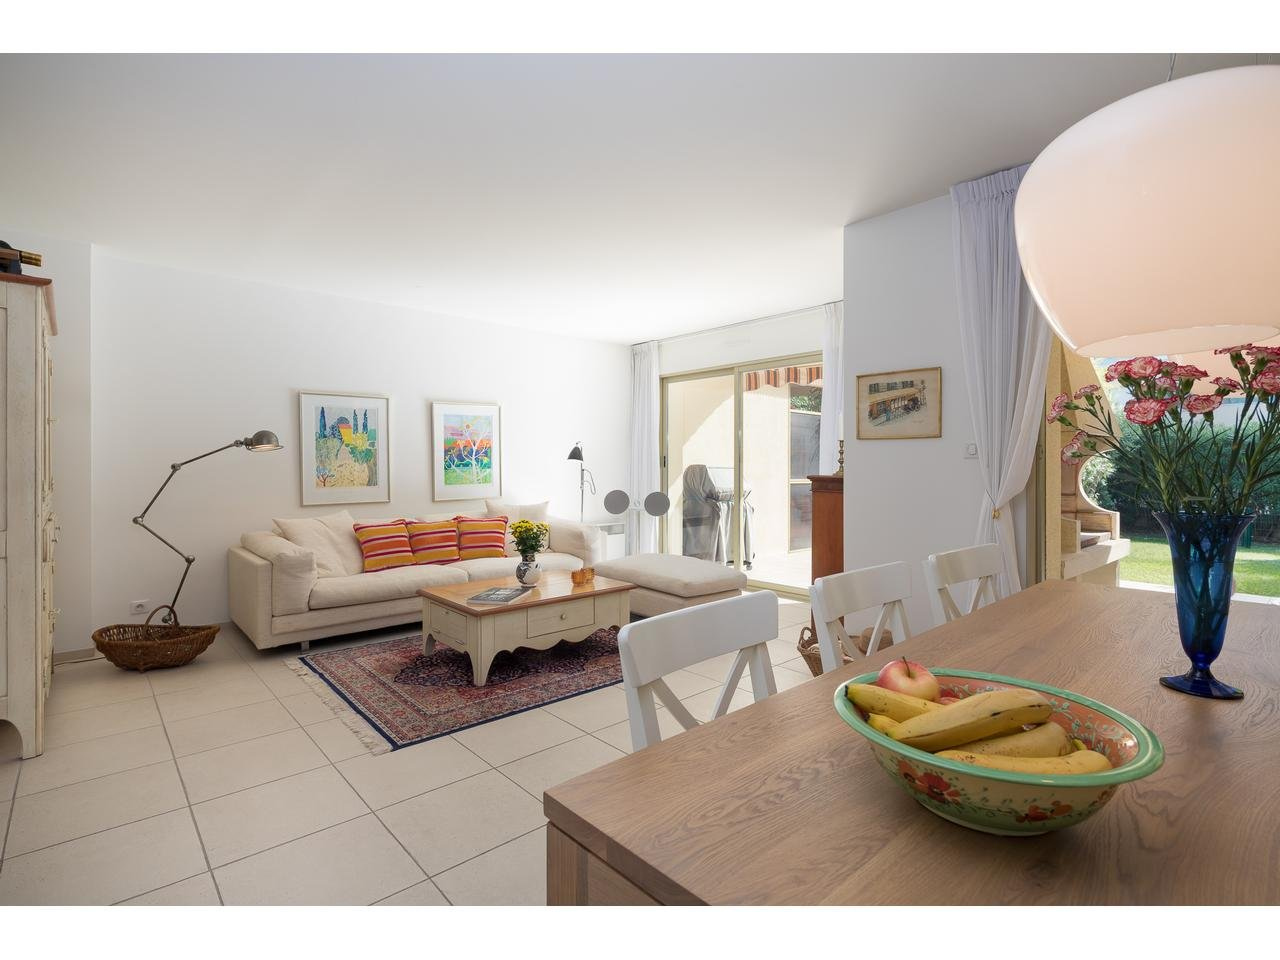 Maison  5 Rooms 115m2  for sale   550 000 €